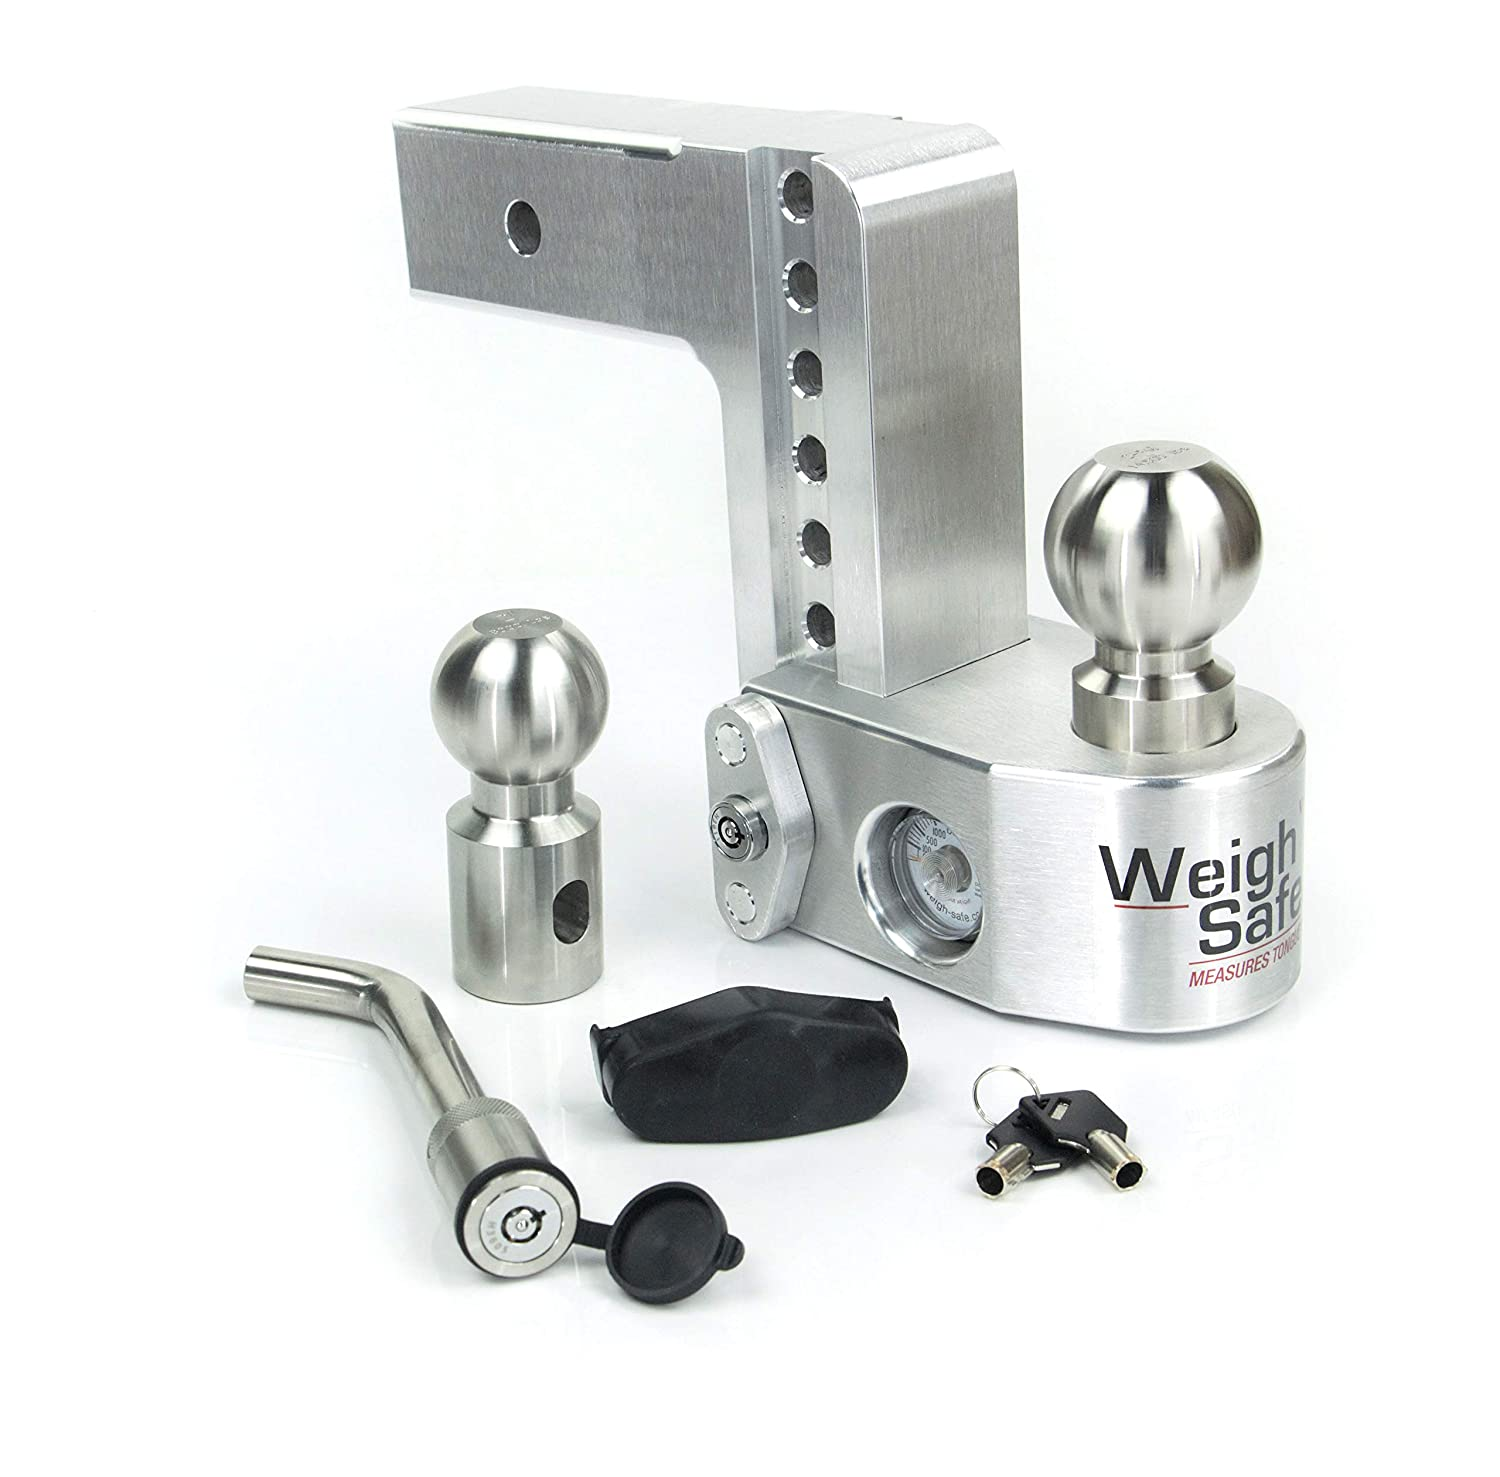 6 Drop Hitch w// 2.5 Shank//Shaft Adjustable Aluminum Trailer Hitch /& Ball Mount w//Built-in Scale 2 /& 2-5//16 Keyed Alike Key Lock and Hitch Pin Weigh Safe WS6-2.5-KA 2 Stainless Steel Balls